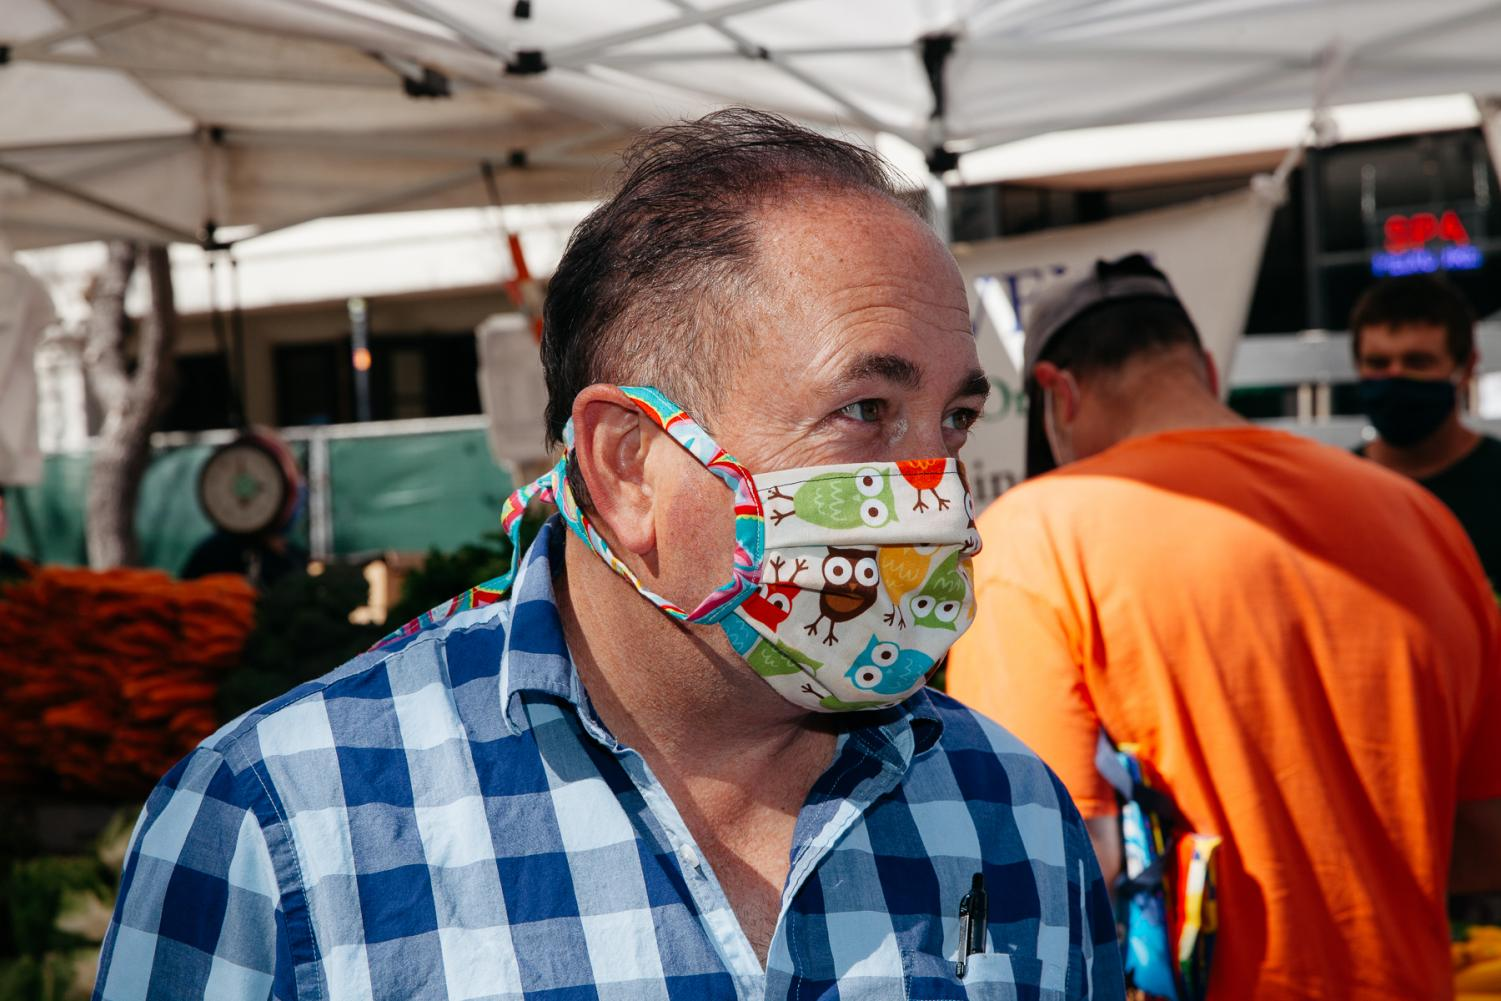 Micheal Amador in a handmade mask from a friend on Tuesday, April 21 in Downtown Santa Barbara, Calif.